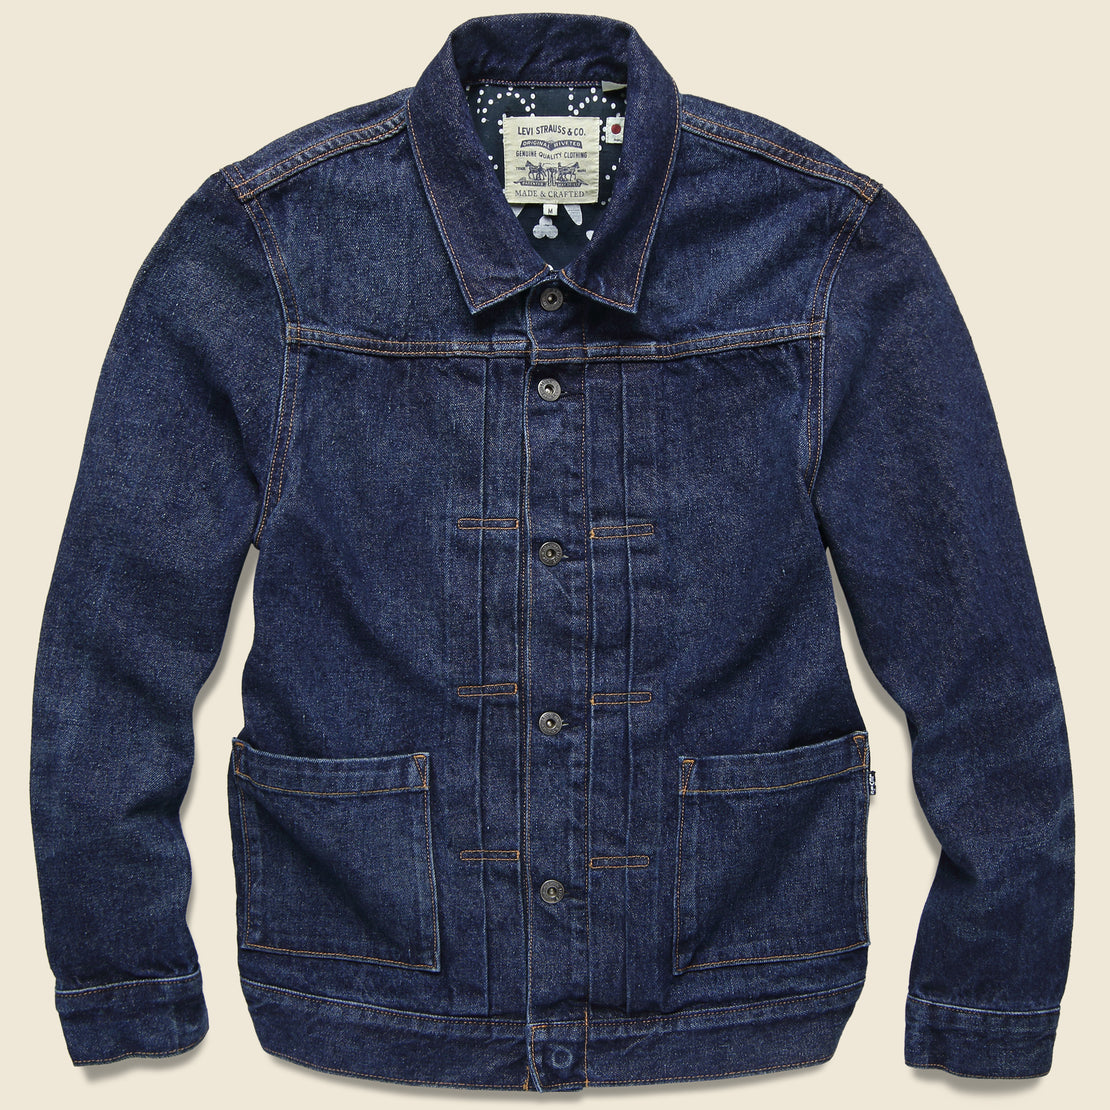 Levis Made & Crafted Type II Trucker Jacket - Neppy